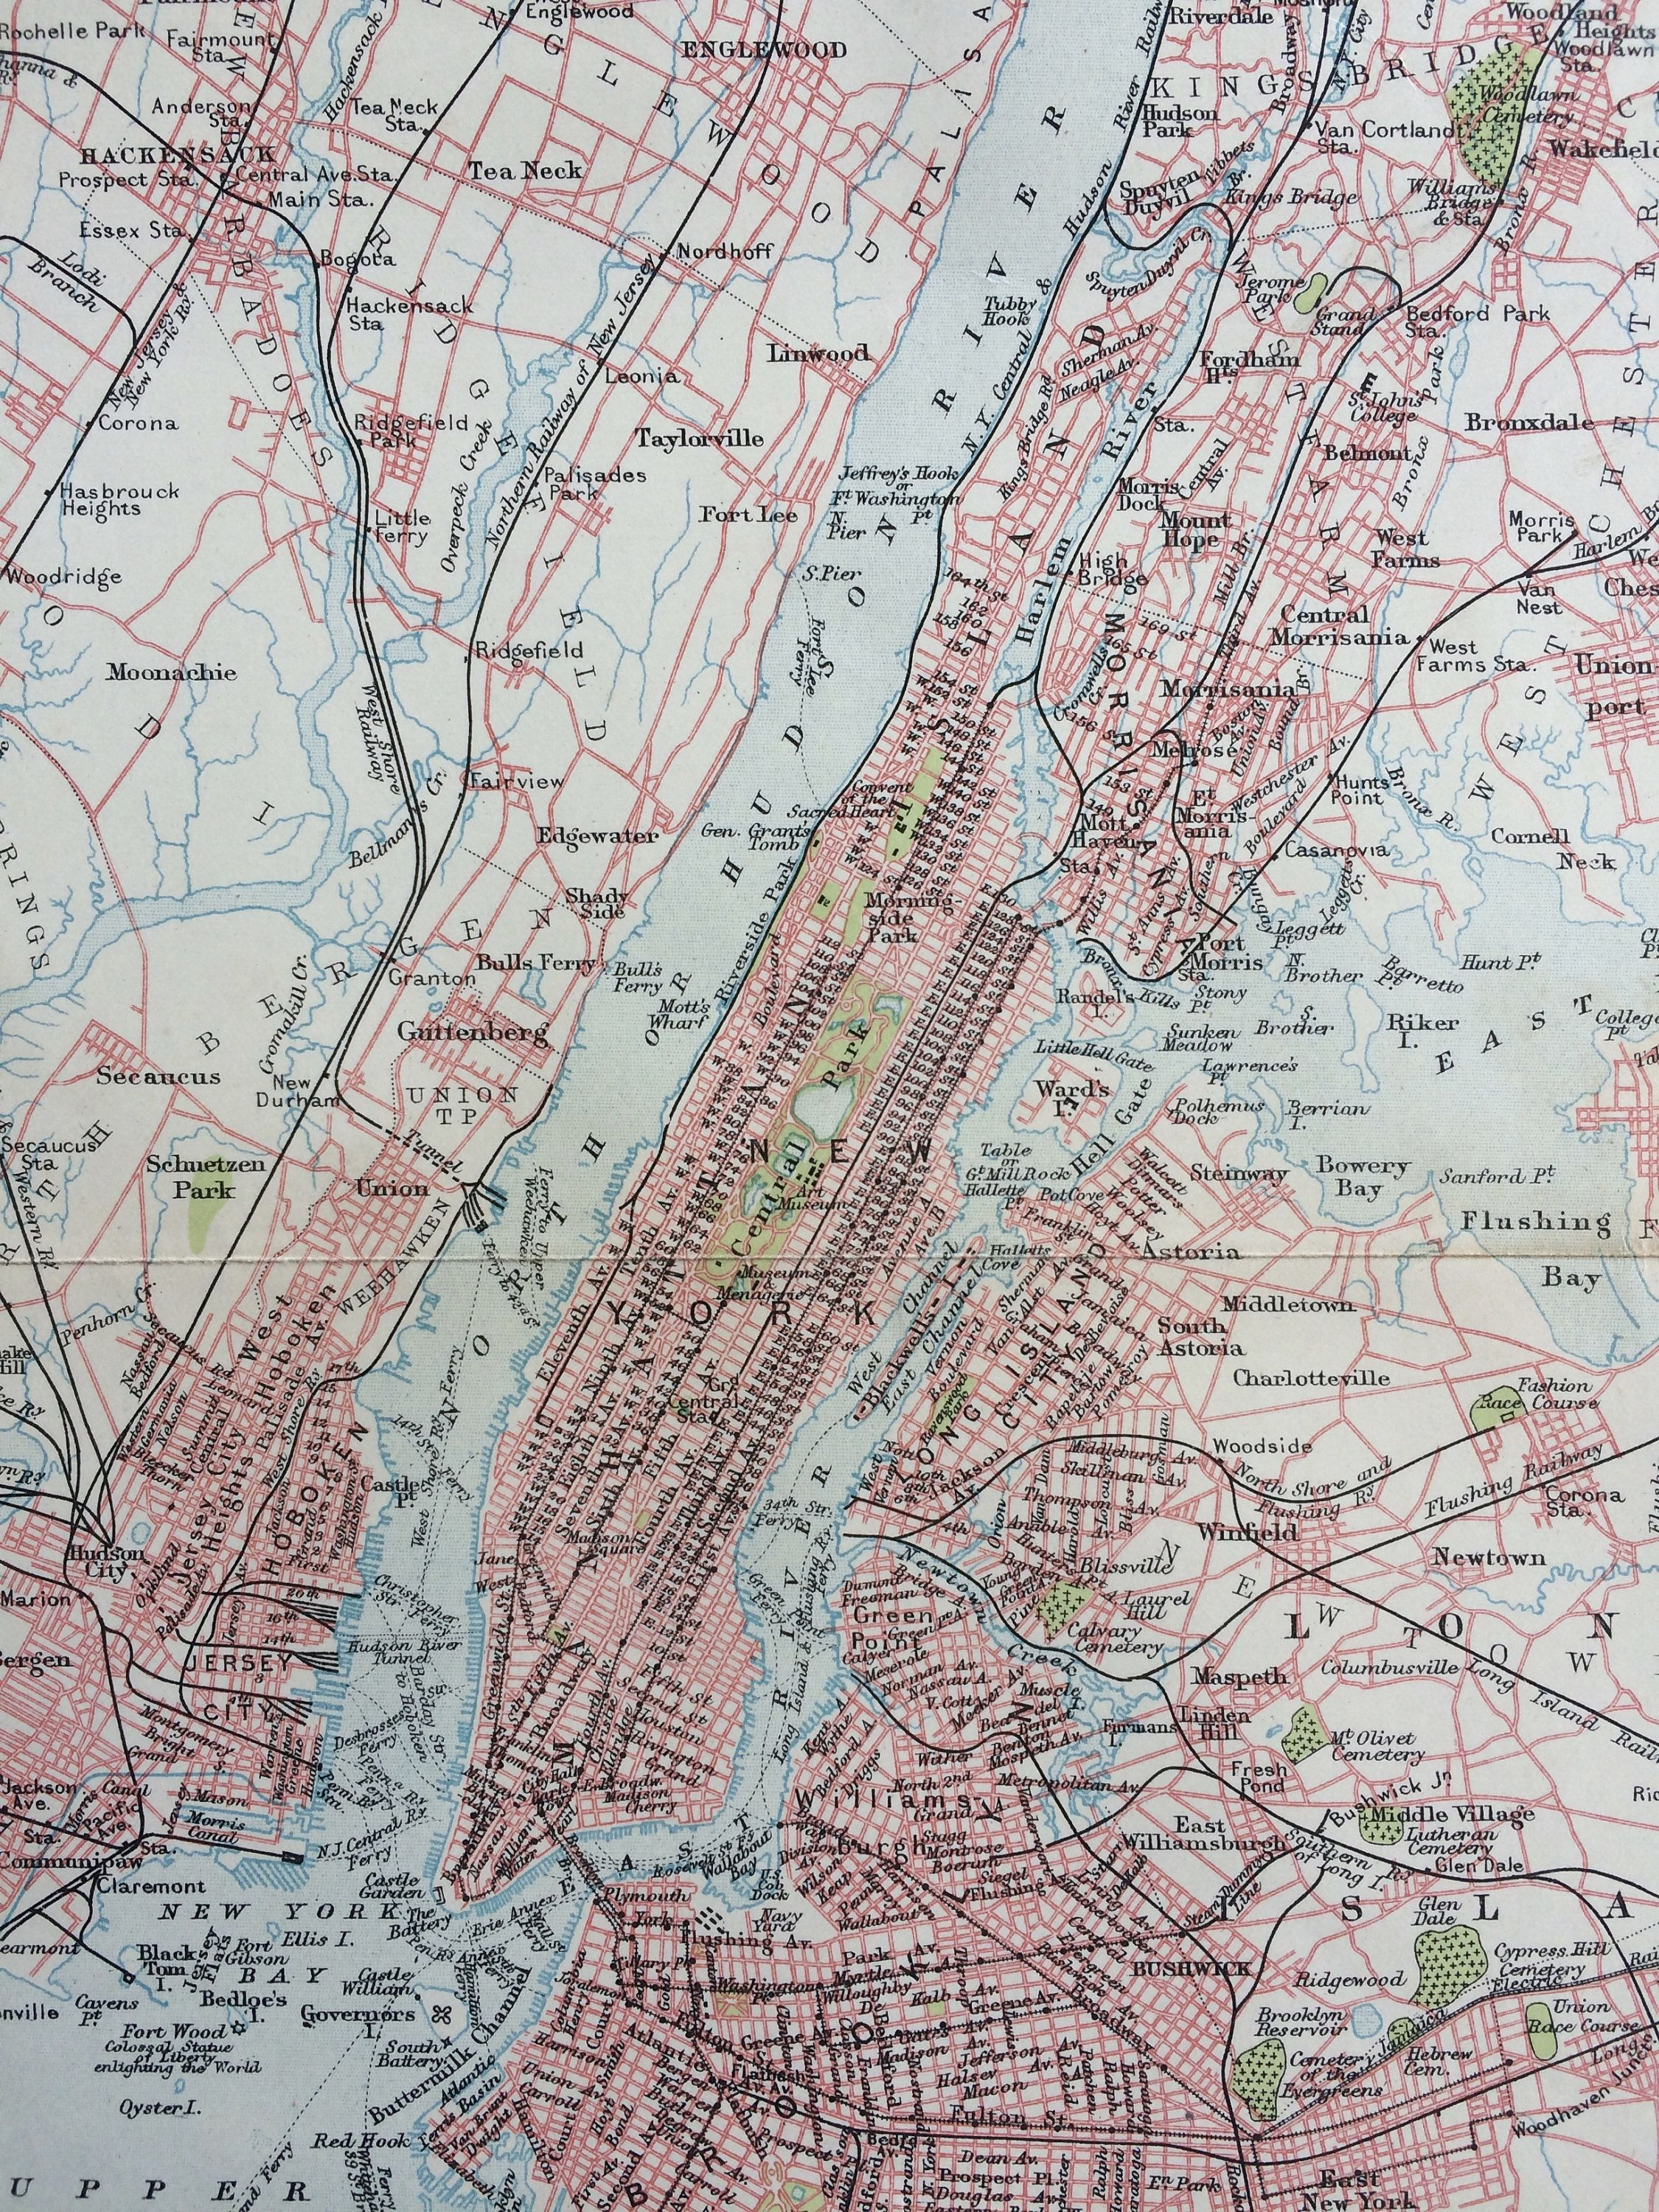 1900 New York And Environs Original Antique Map 9 X 10 5 Inches